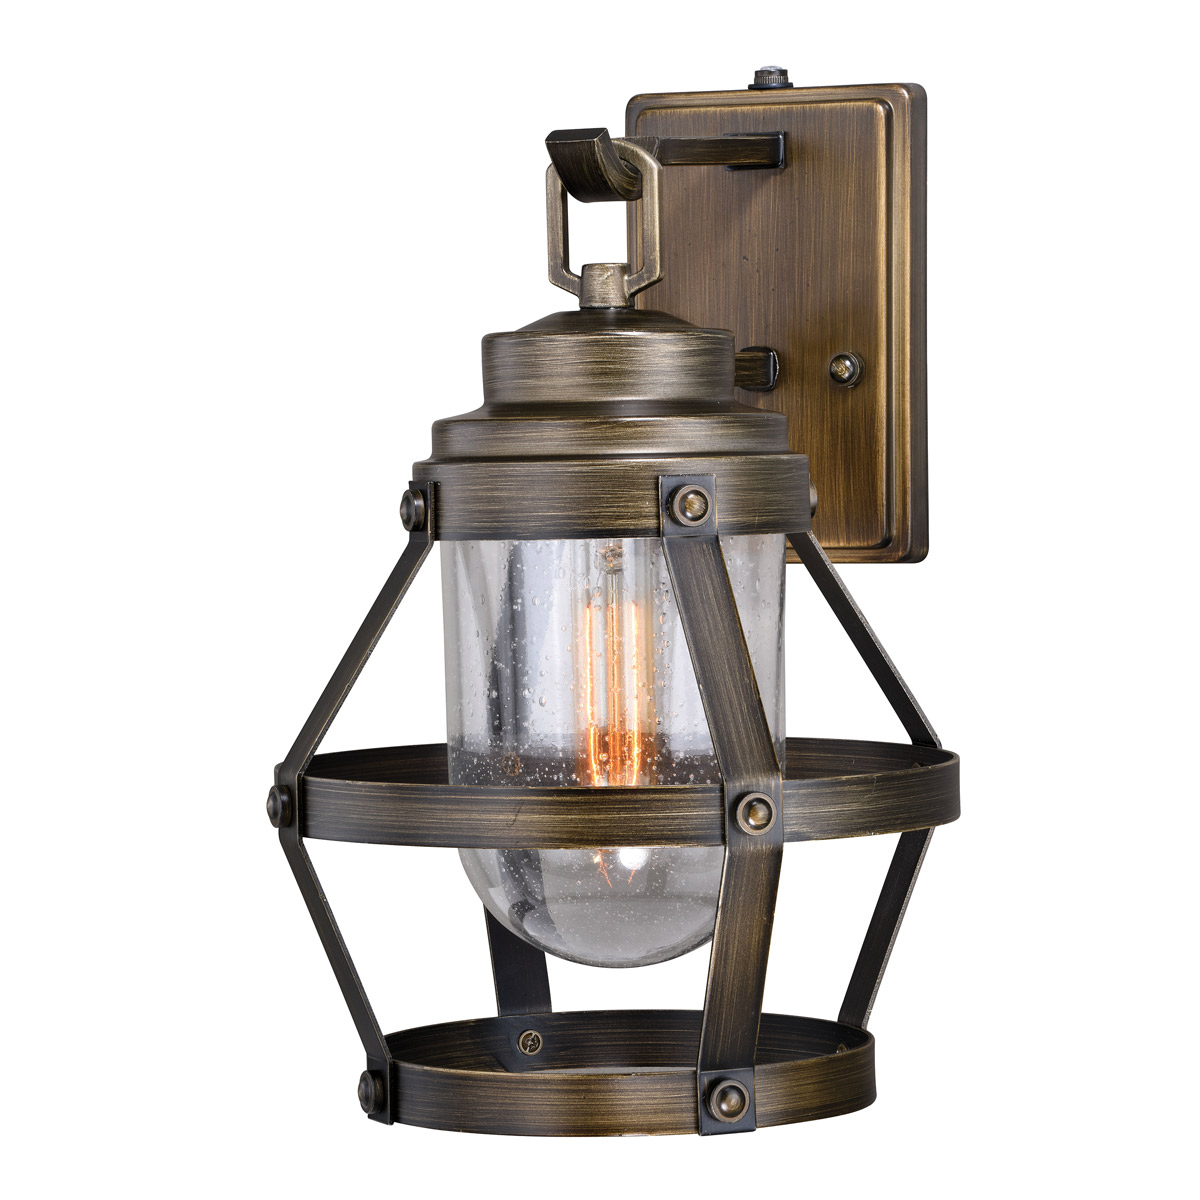 Frontier Lantern Wall Sconce - Large